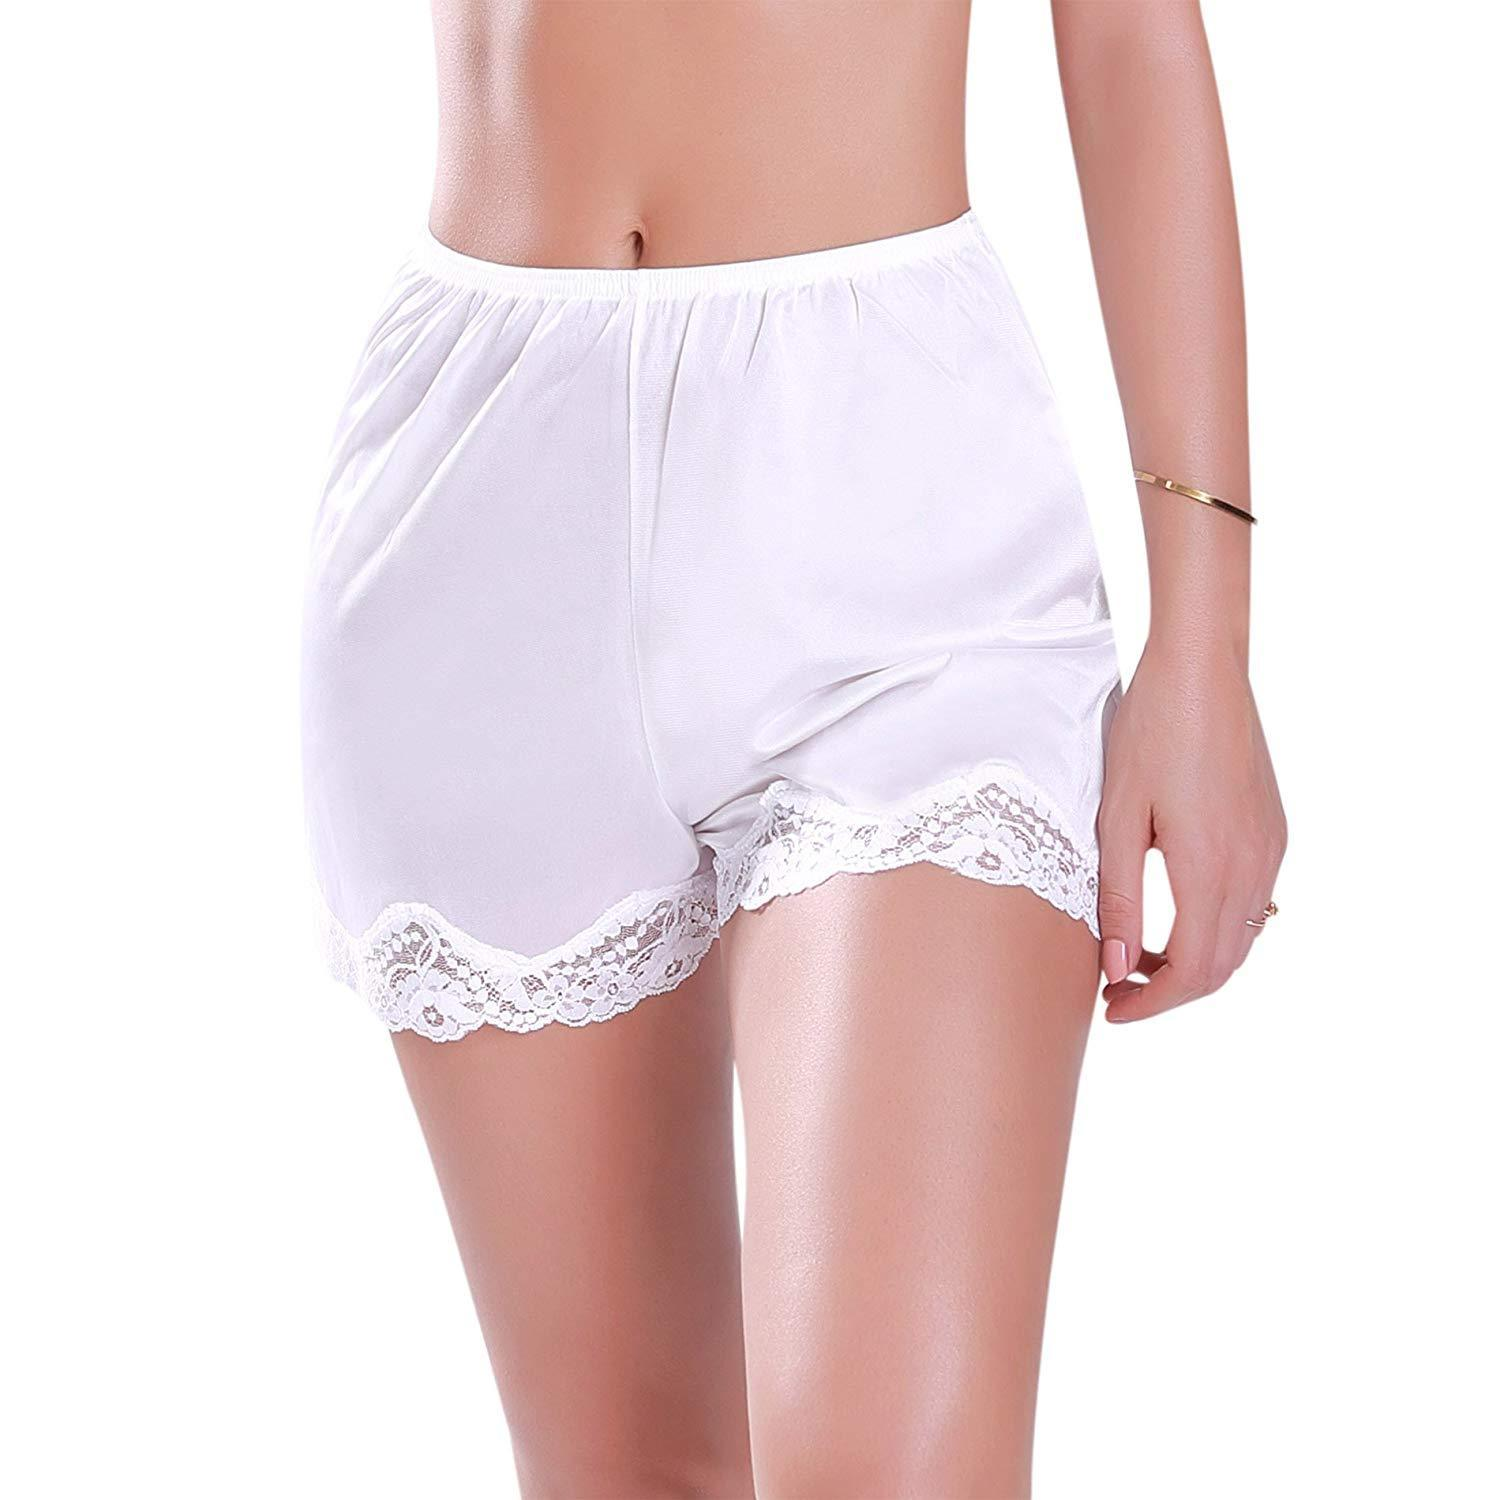 2018 NEW Women's Premium Nylon Daywear Bloomer Slip Shorts With Lace Trim M-XXXL